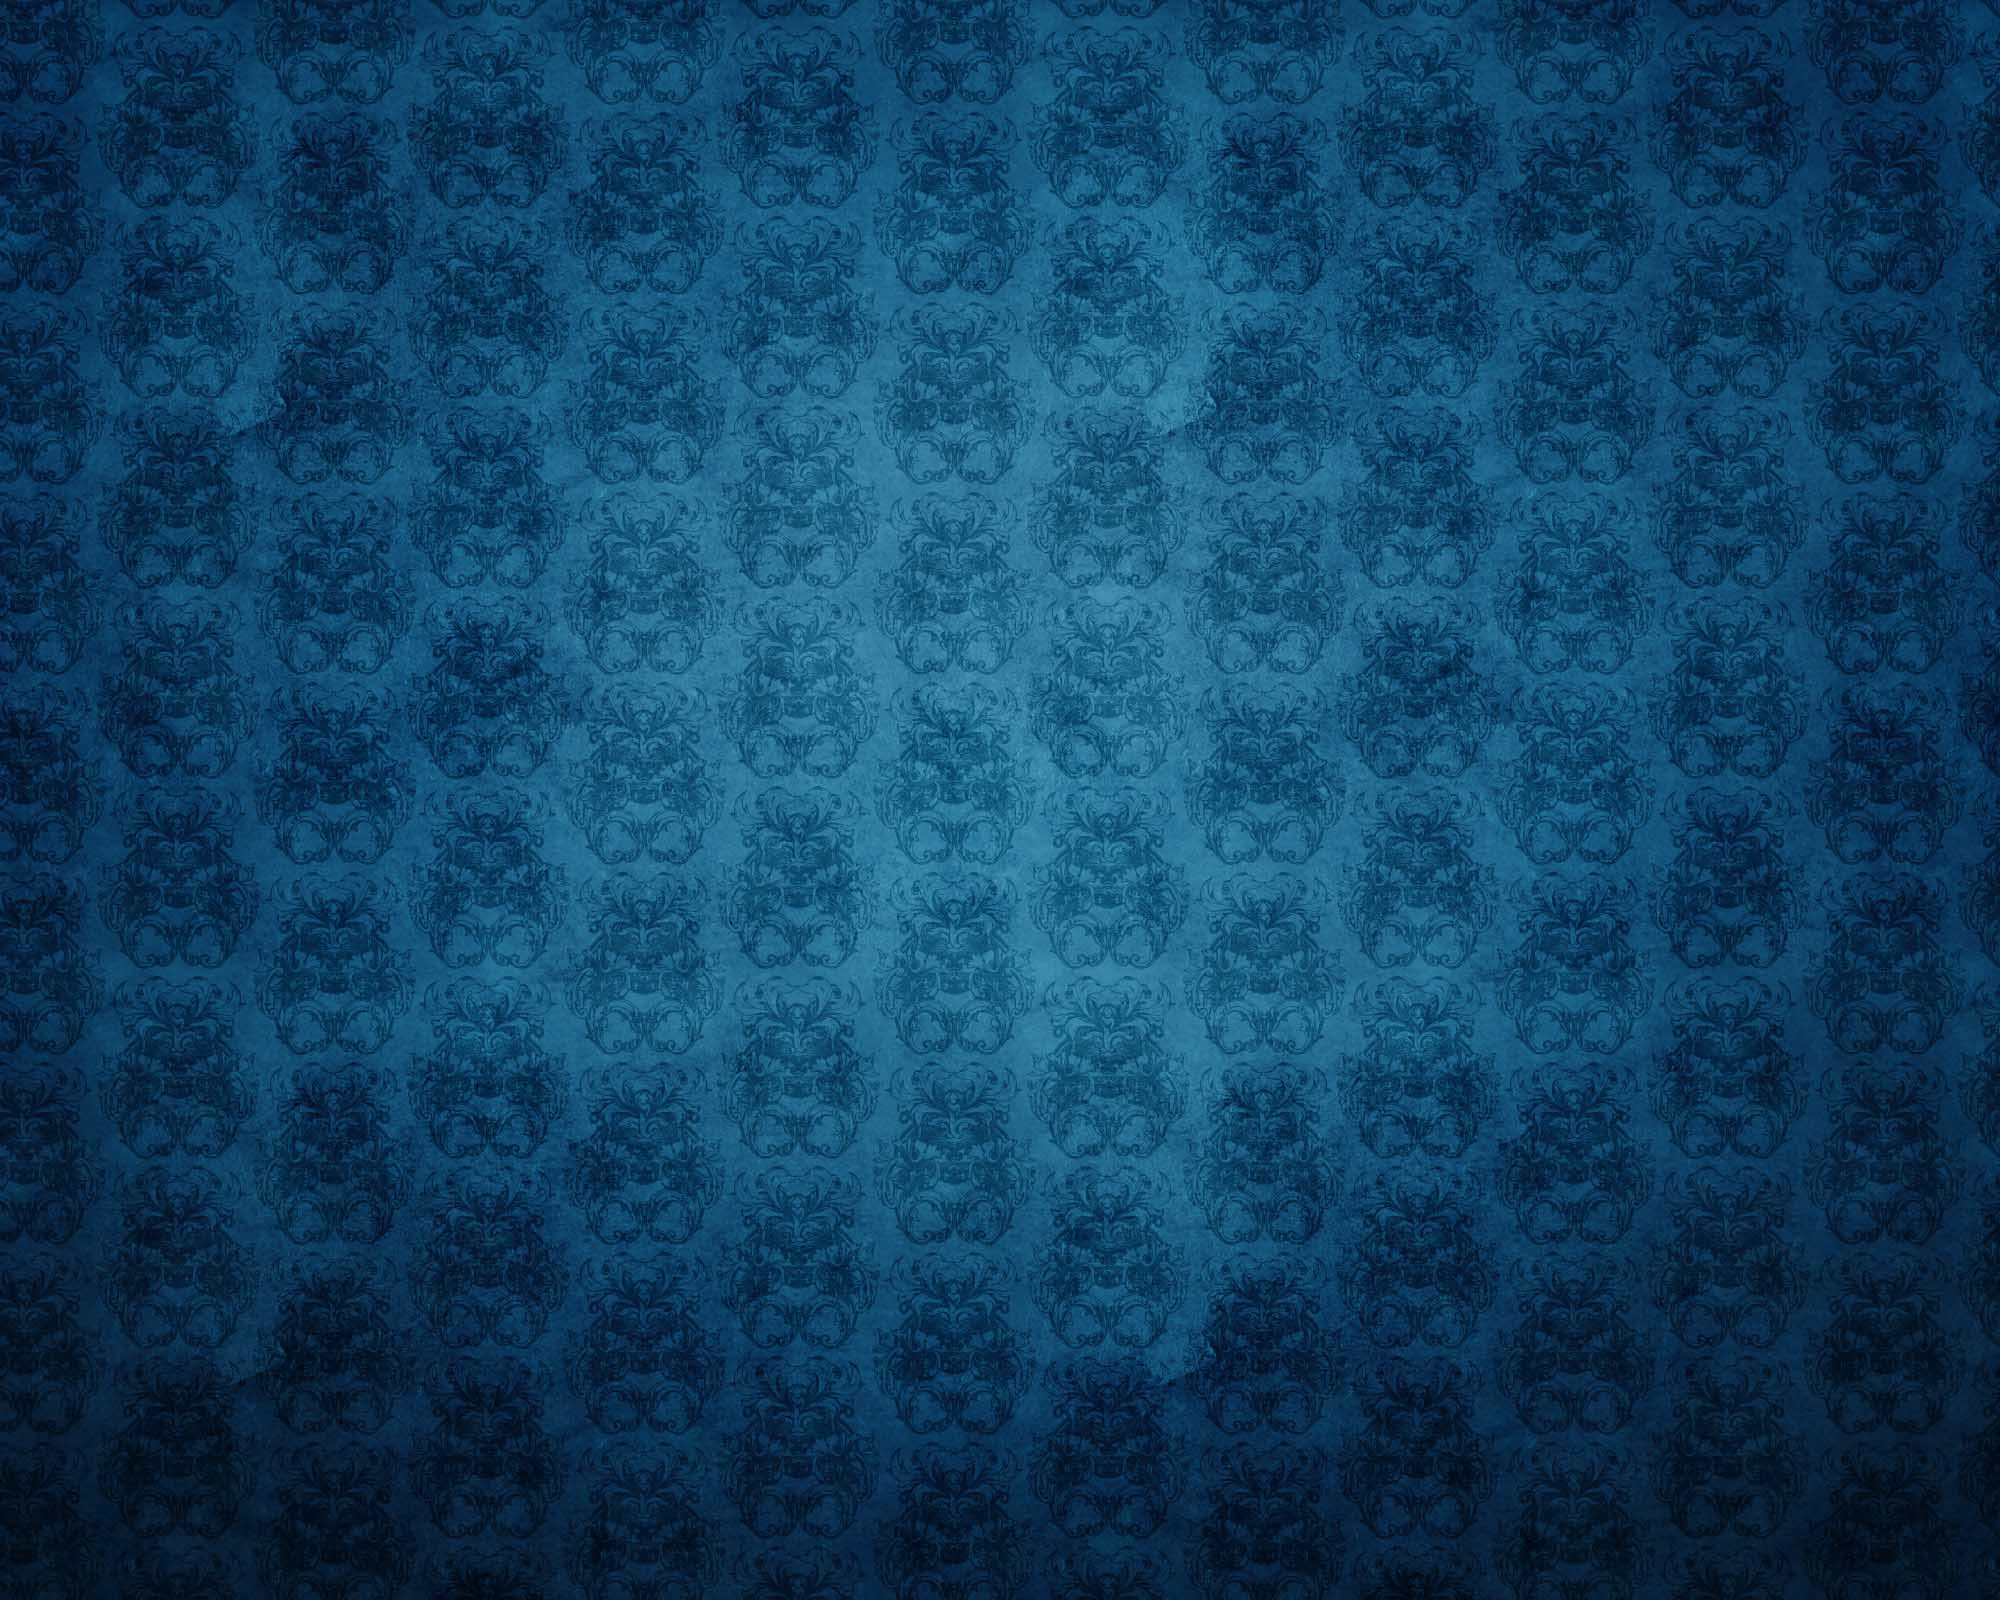 Previous Post Blue Vedios Wallpapers Next Post Blue Vector Wallpapers 2000x1600